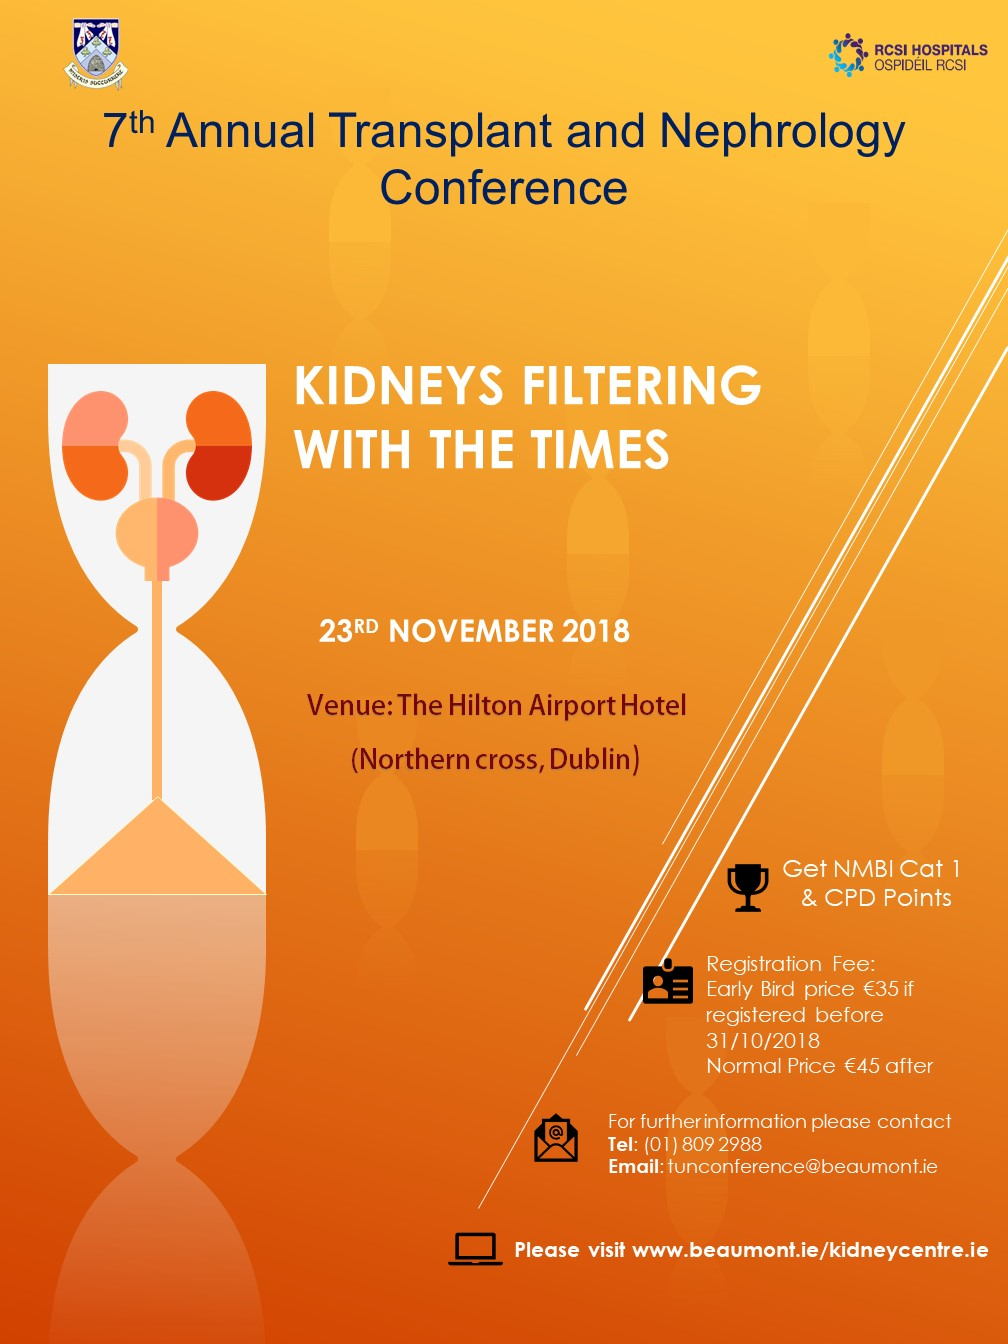 7th National Transplant & Nephrology Conference 2018